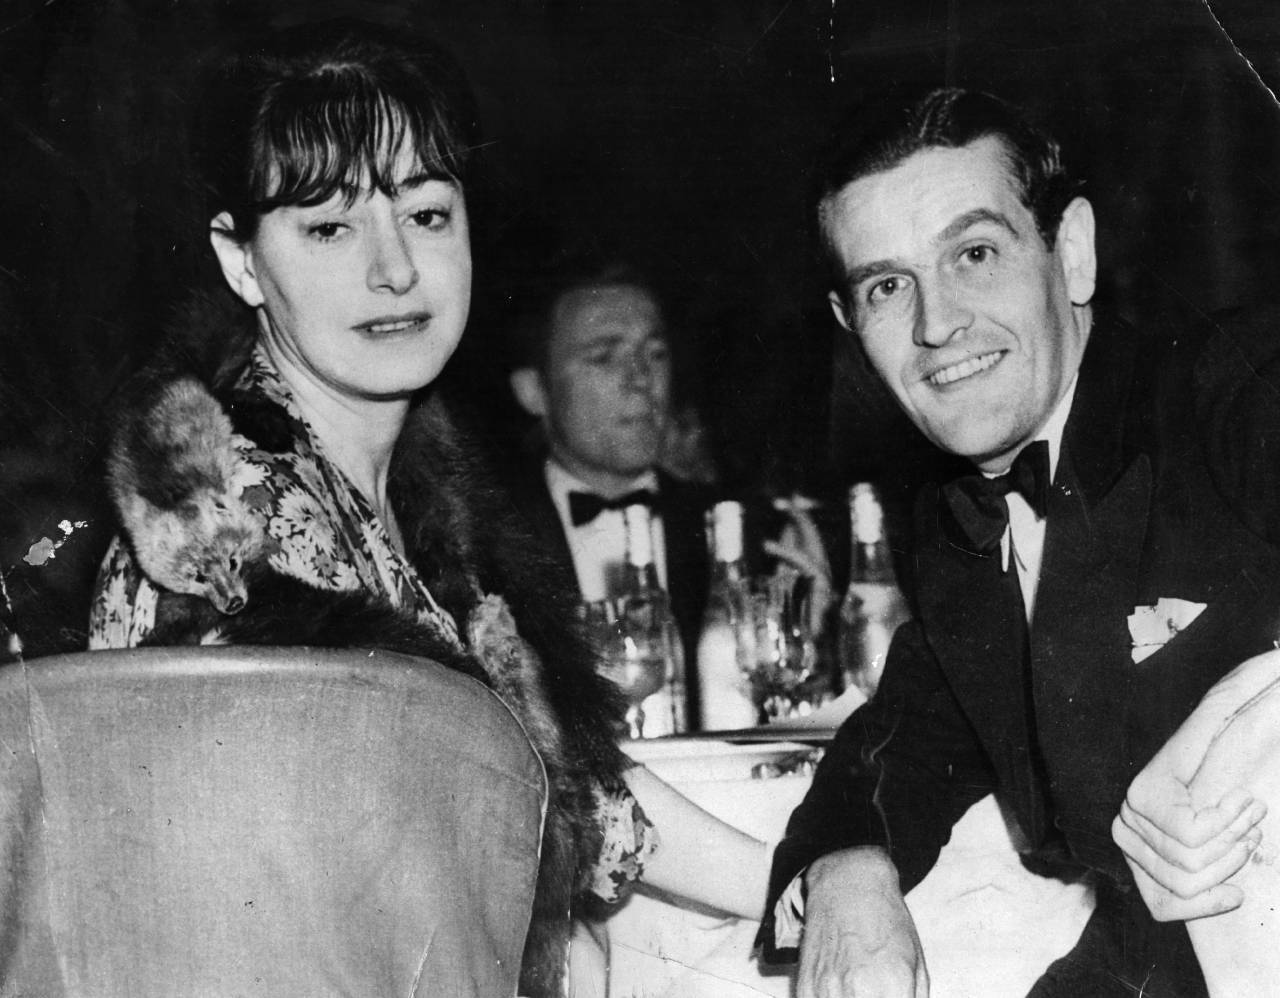 American journalist, writer and wit Dorothy Parker (1893 - 1967), at a restaurant. with her husband, Alan Campbell. Original Publication: People Disc - HK0426 (Photo by Evening Standard/Getty Images)